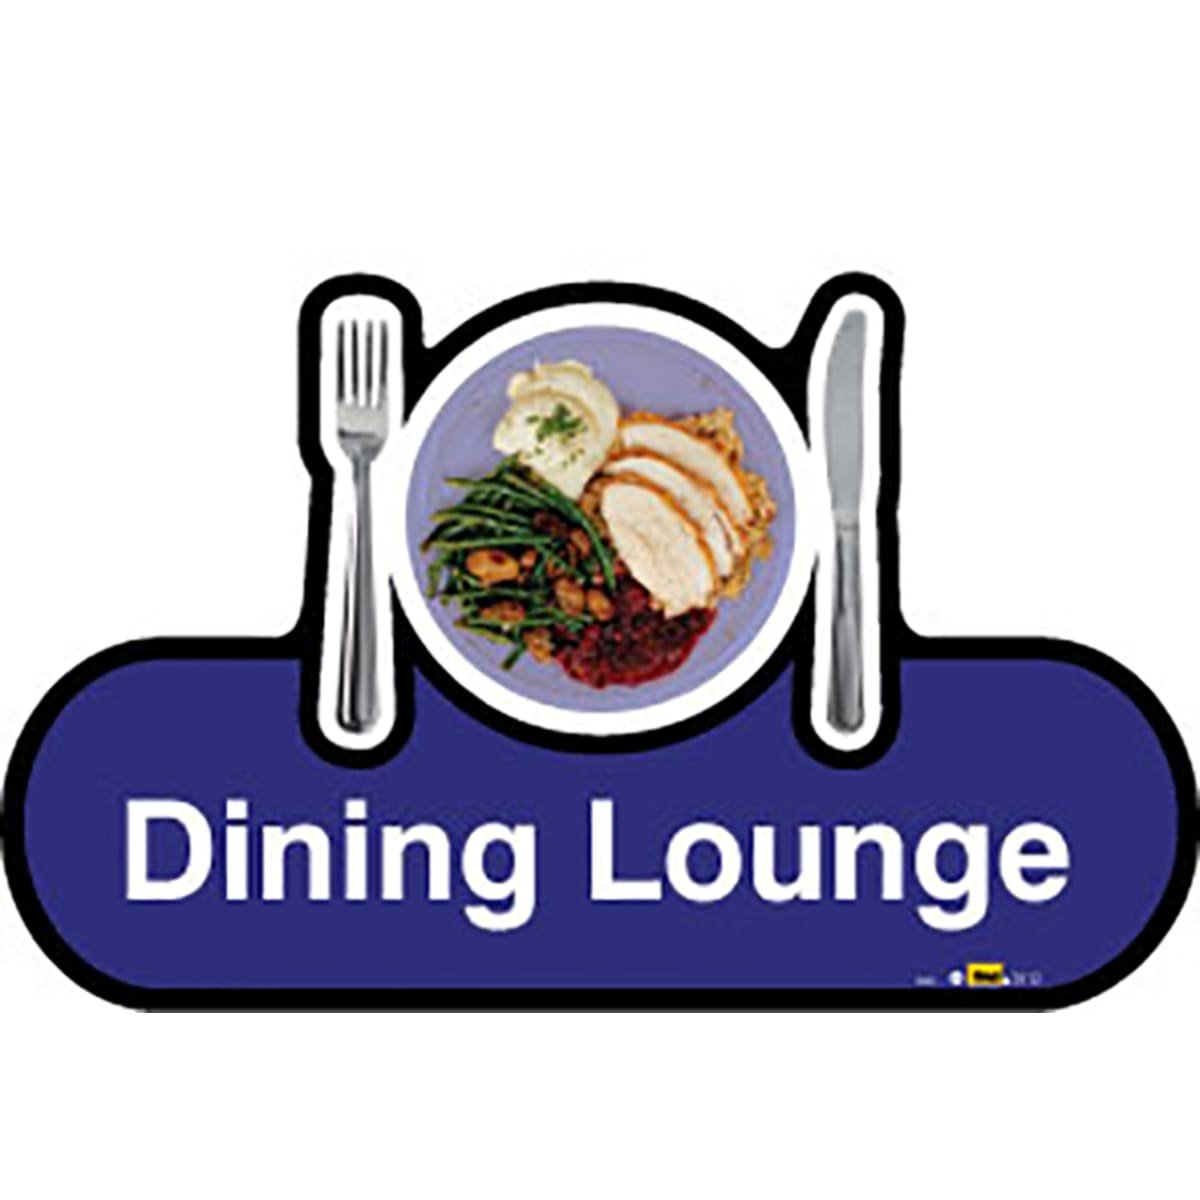 Dementia Friendly Dining Lounge - Blue Sign -480mm Wide with Screw Fix by Dementia Friendly